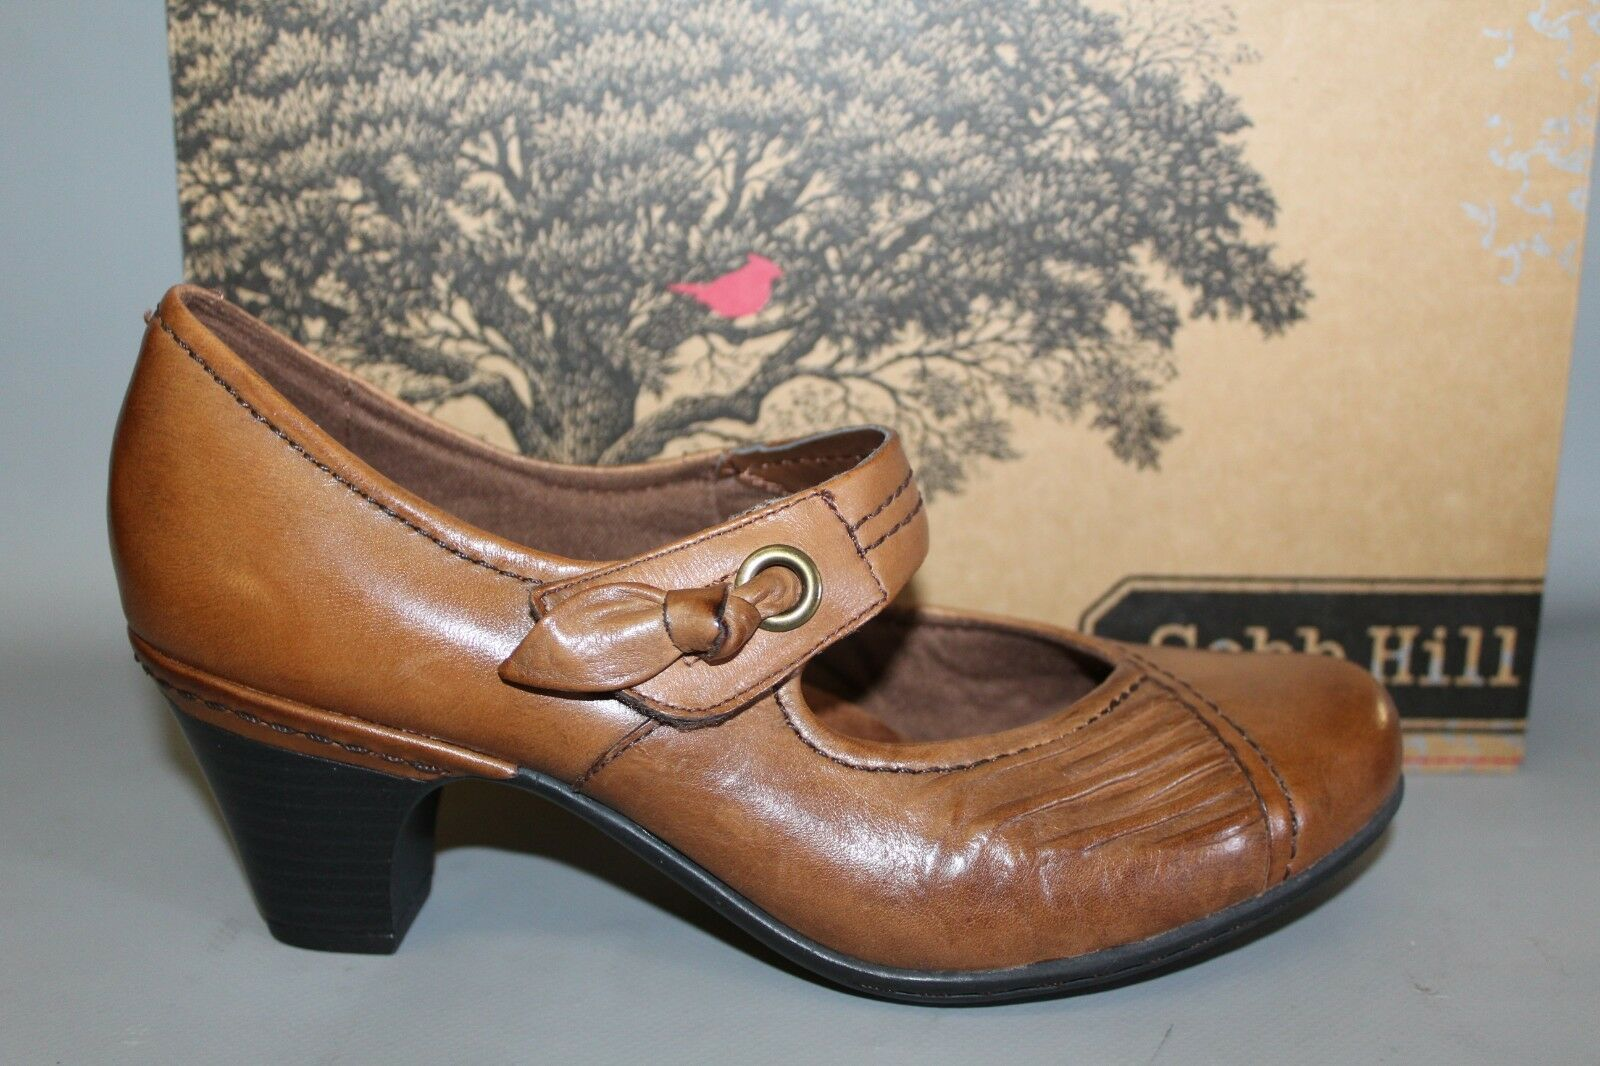 NEW Women's Cobb Hill Sadie Tan Leather Comfortable Supportive Dress shoes